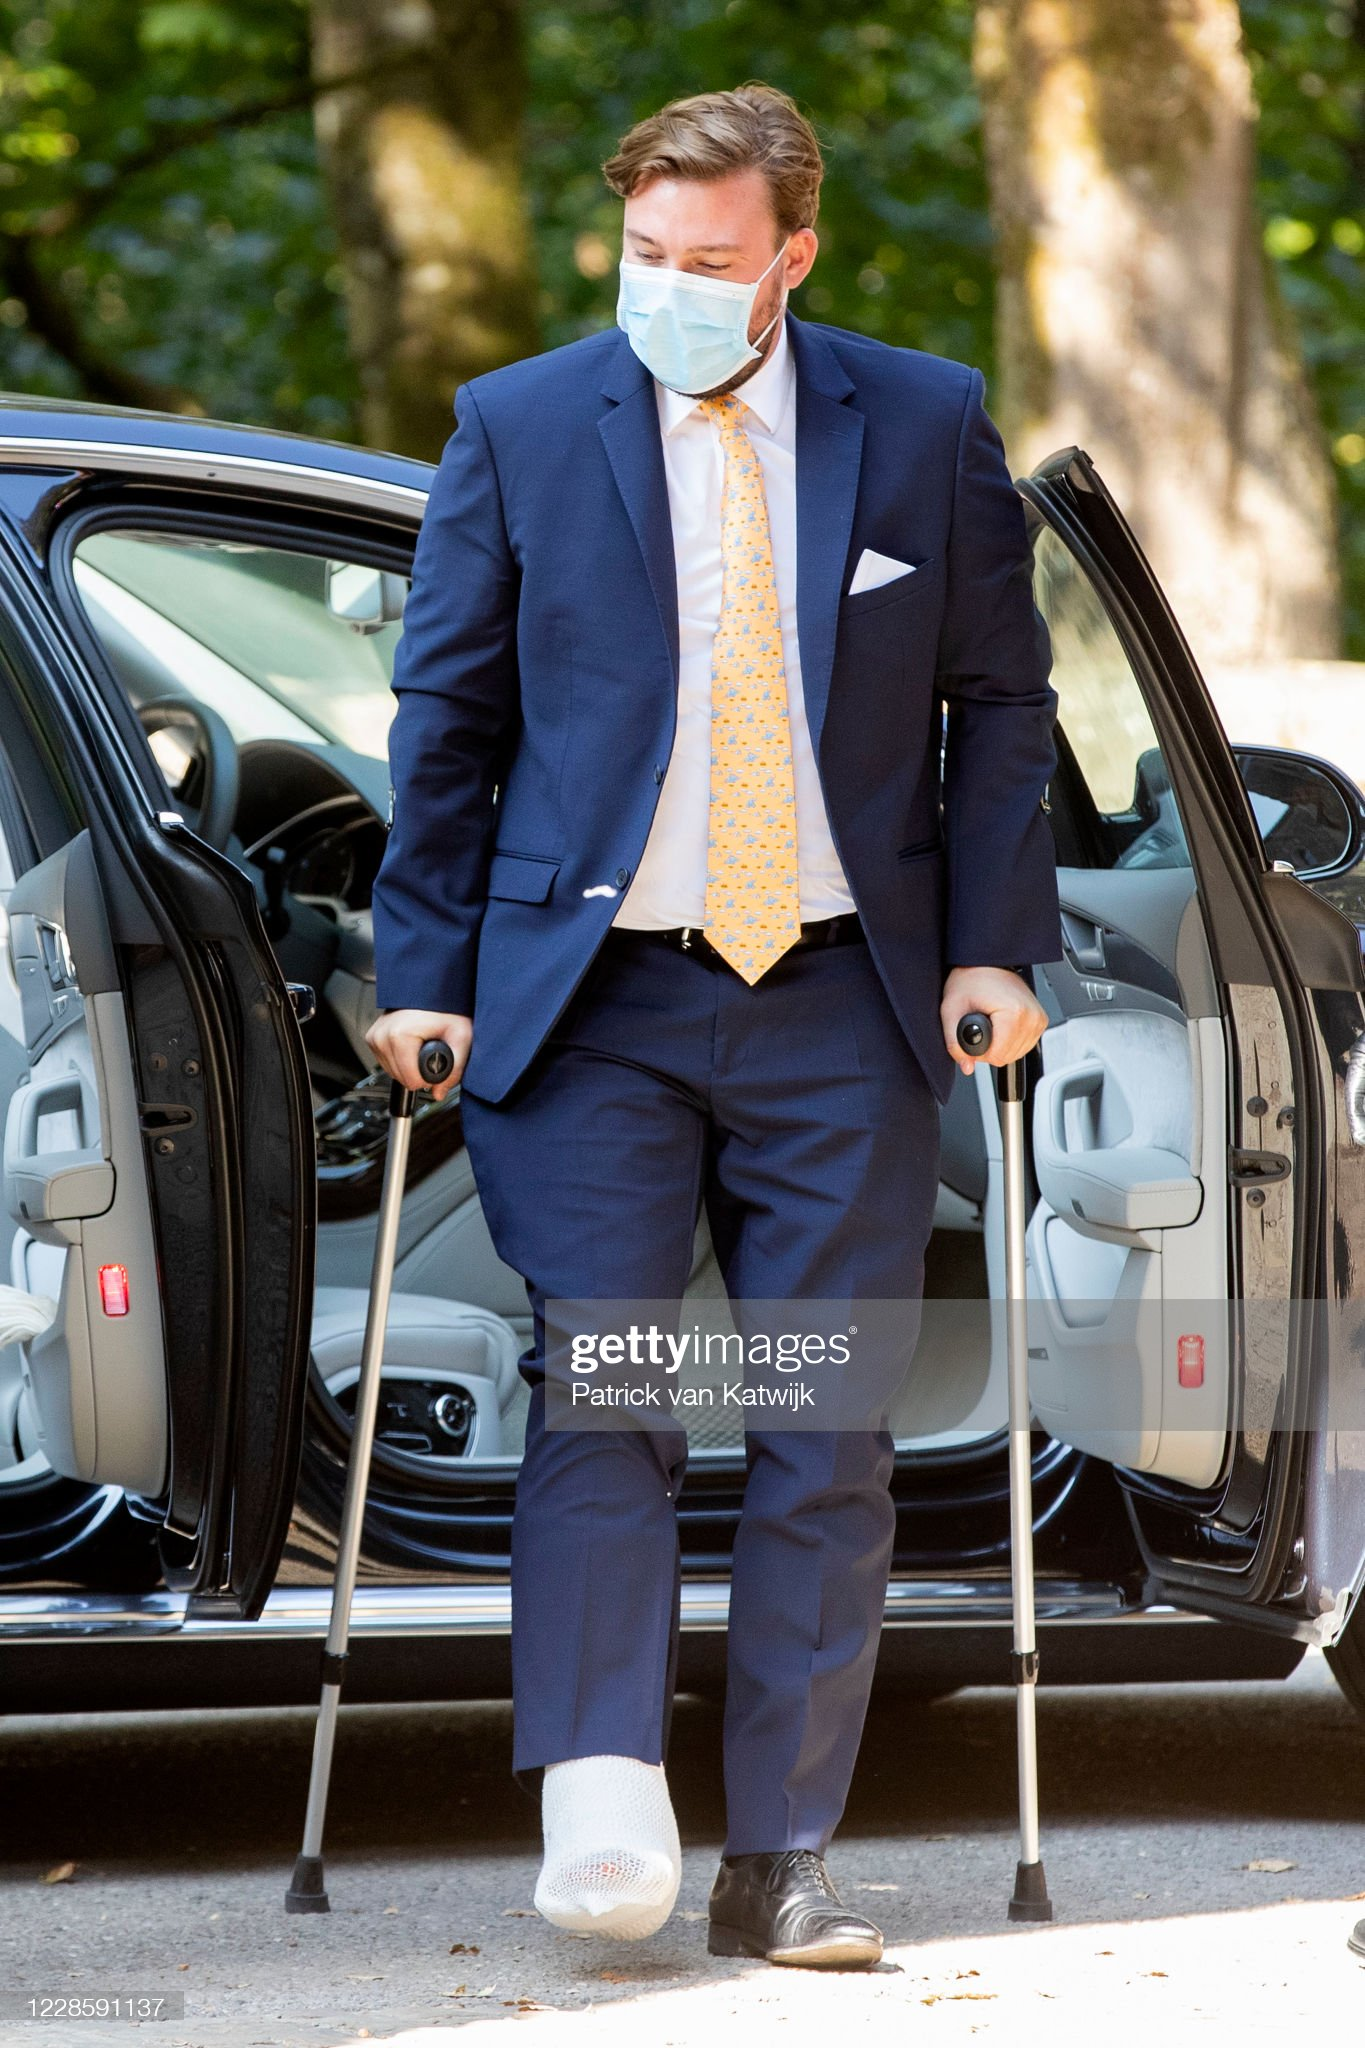 prince-sebastien-of-luxembourg-at-the-baptism-ceremony-of-prince-at-picture-id1228591137